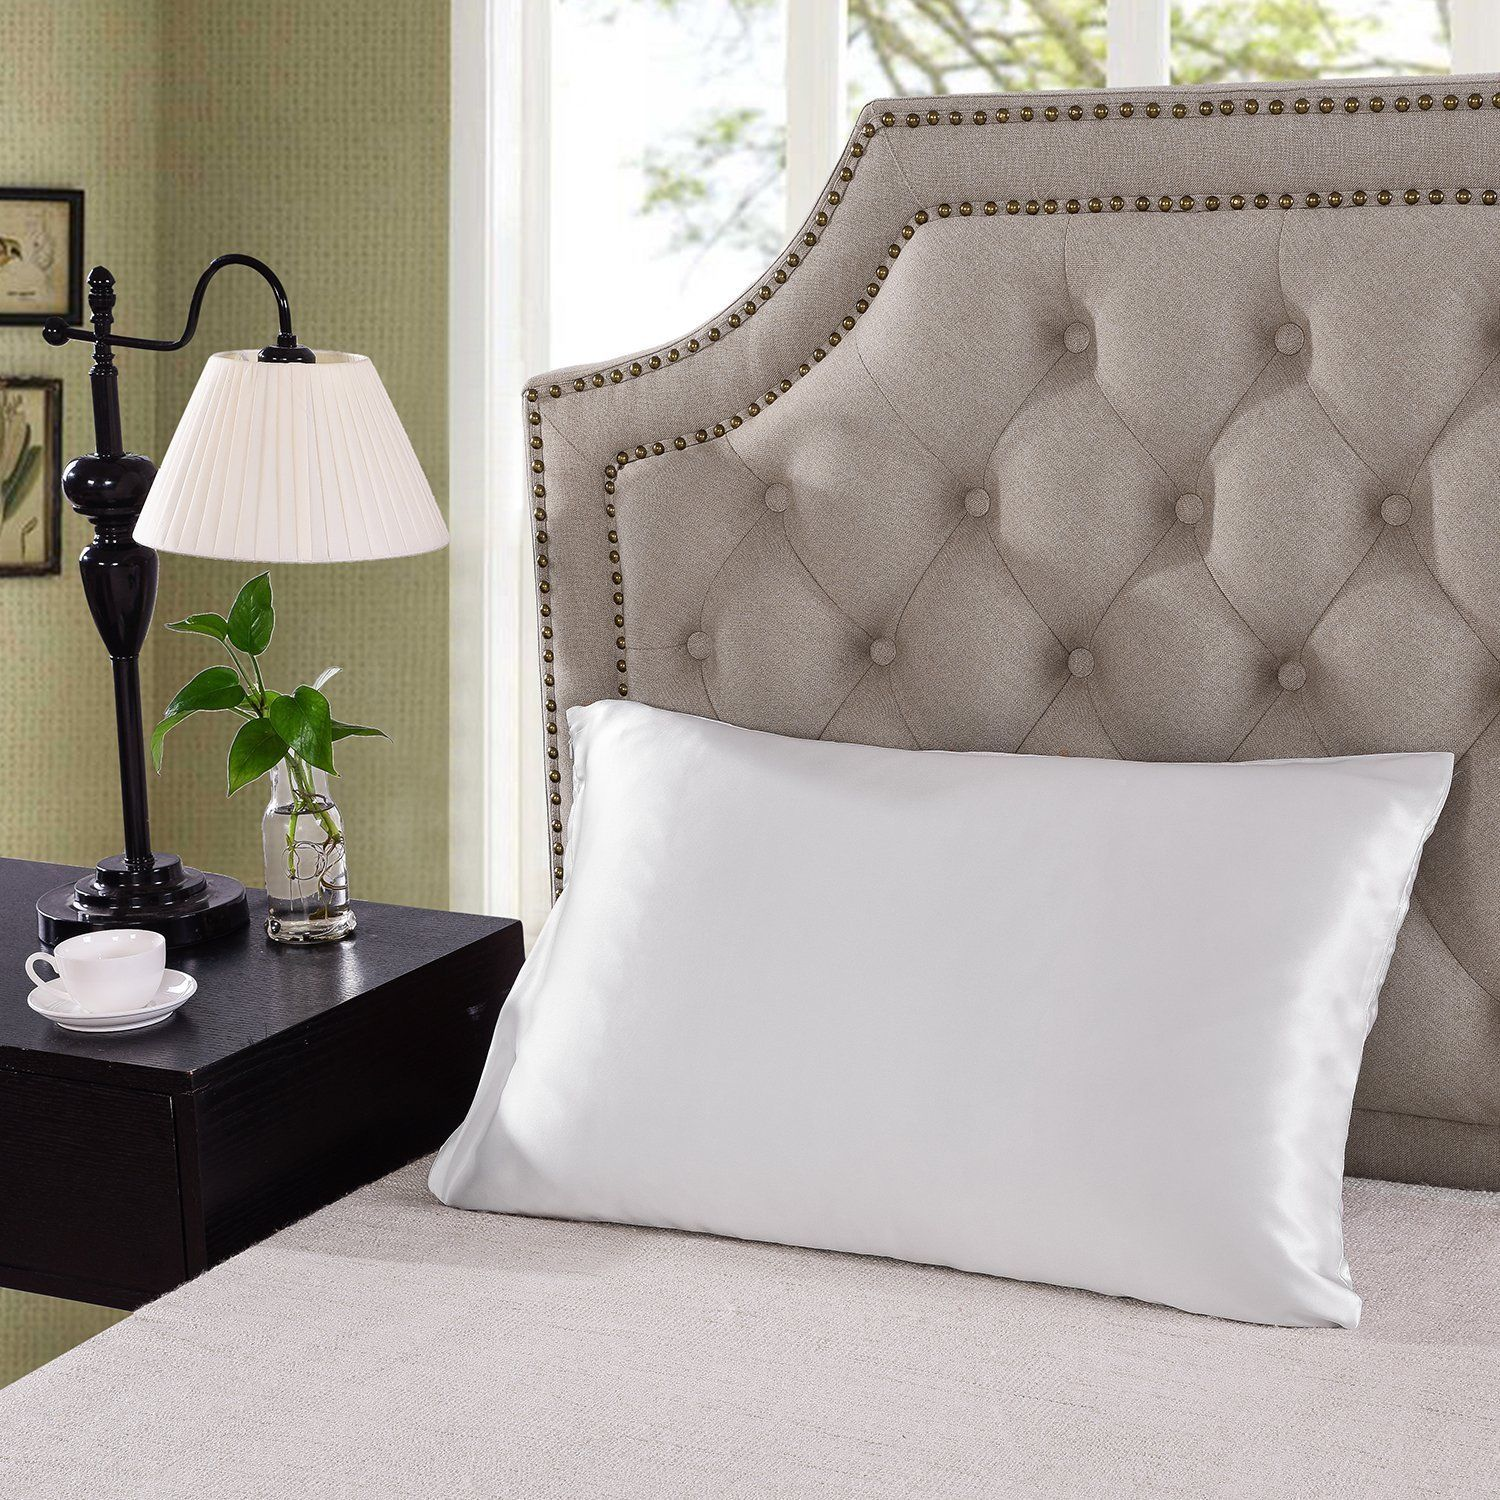 Royal-Comfort-Mulberry-Soft-Silk-Hypoallergenic-Pillowcase-Twin-Pack-51-x-76cm thumbnail 41